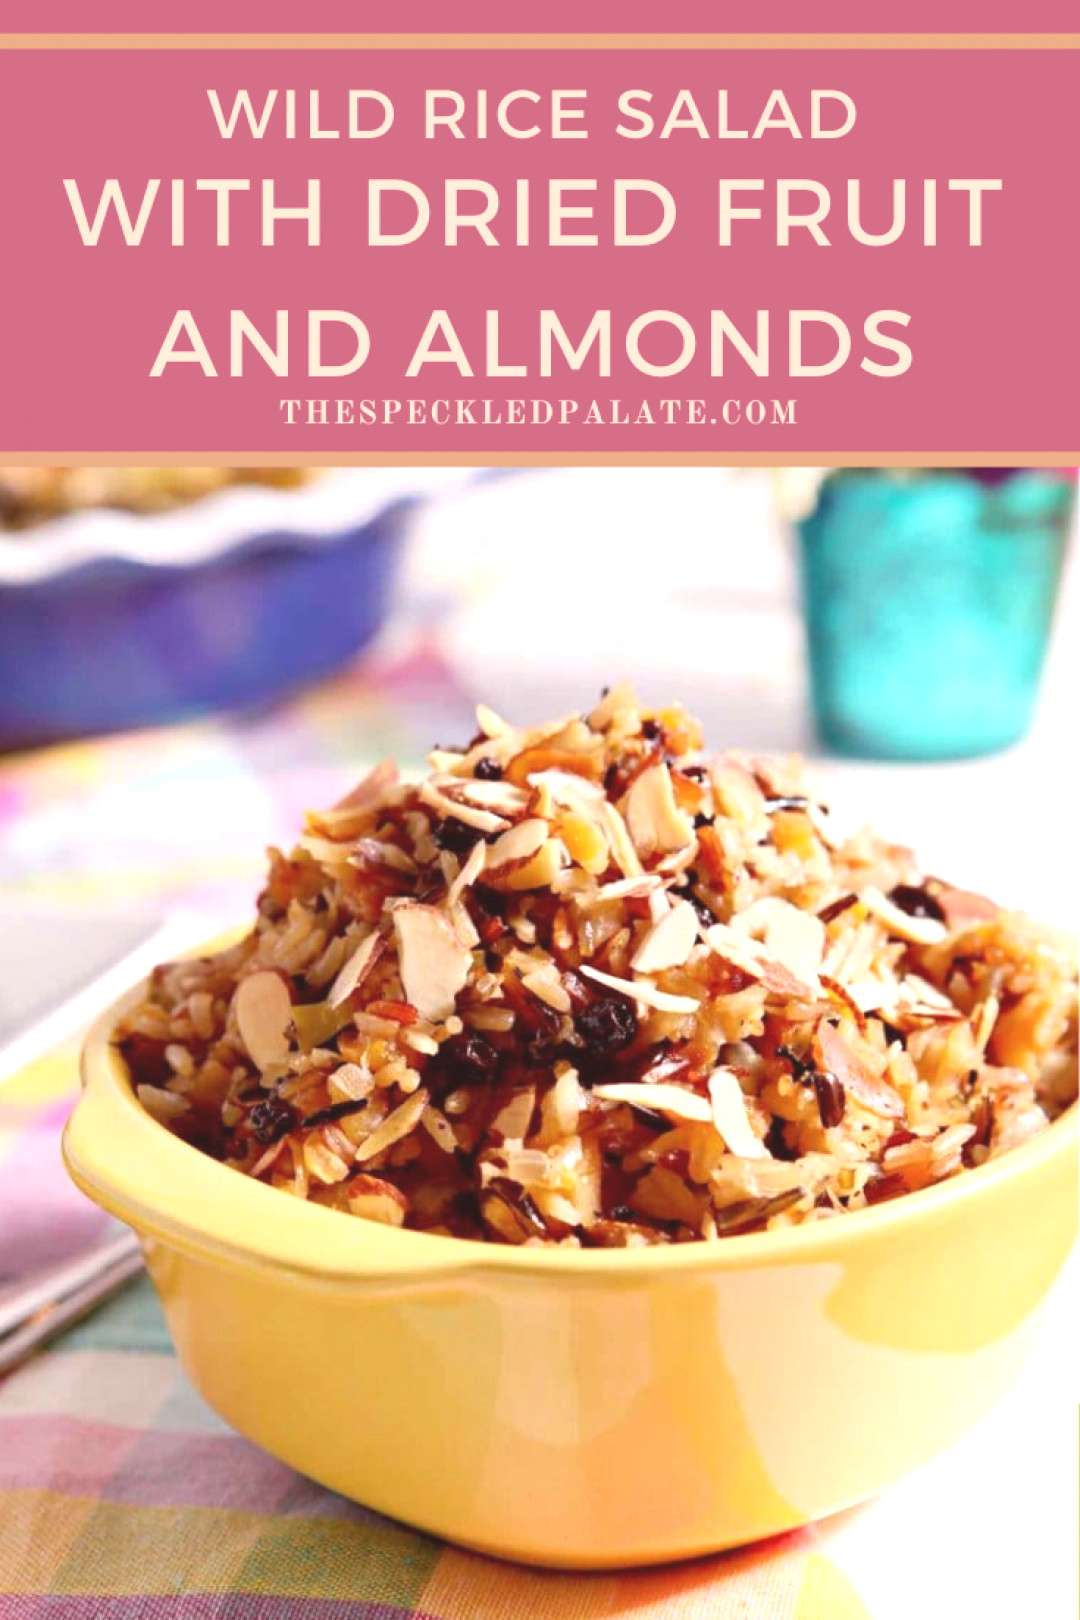 Wild Rice Salad with Dried Fruit and Almonds Wild Rice Salad with Dried Fruit and Almonds,